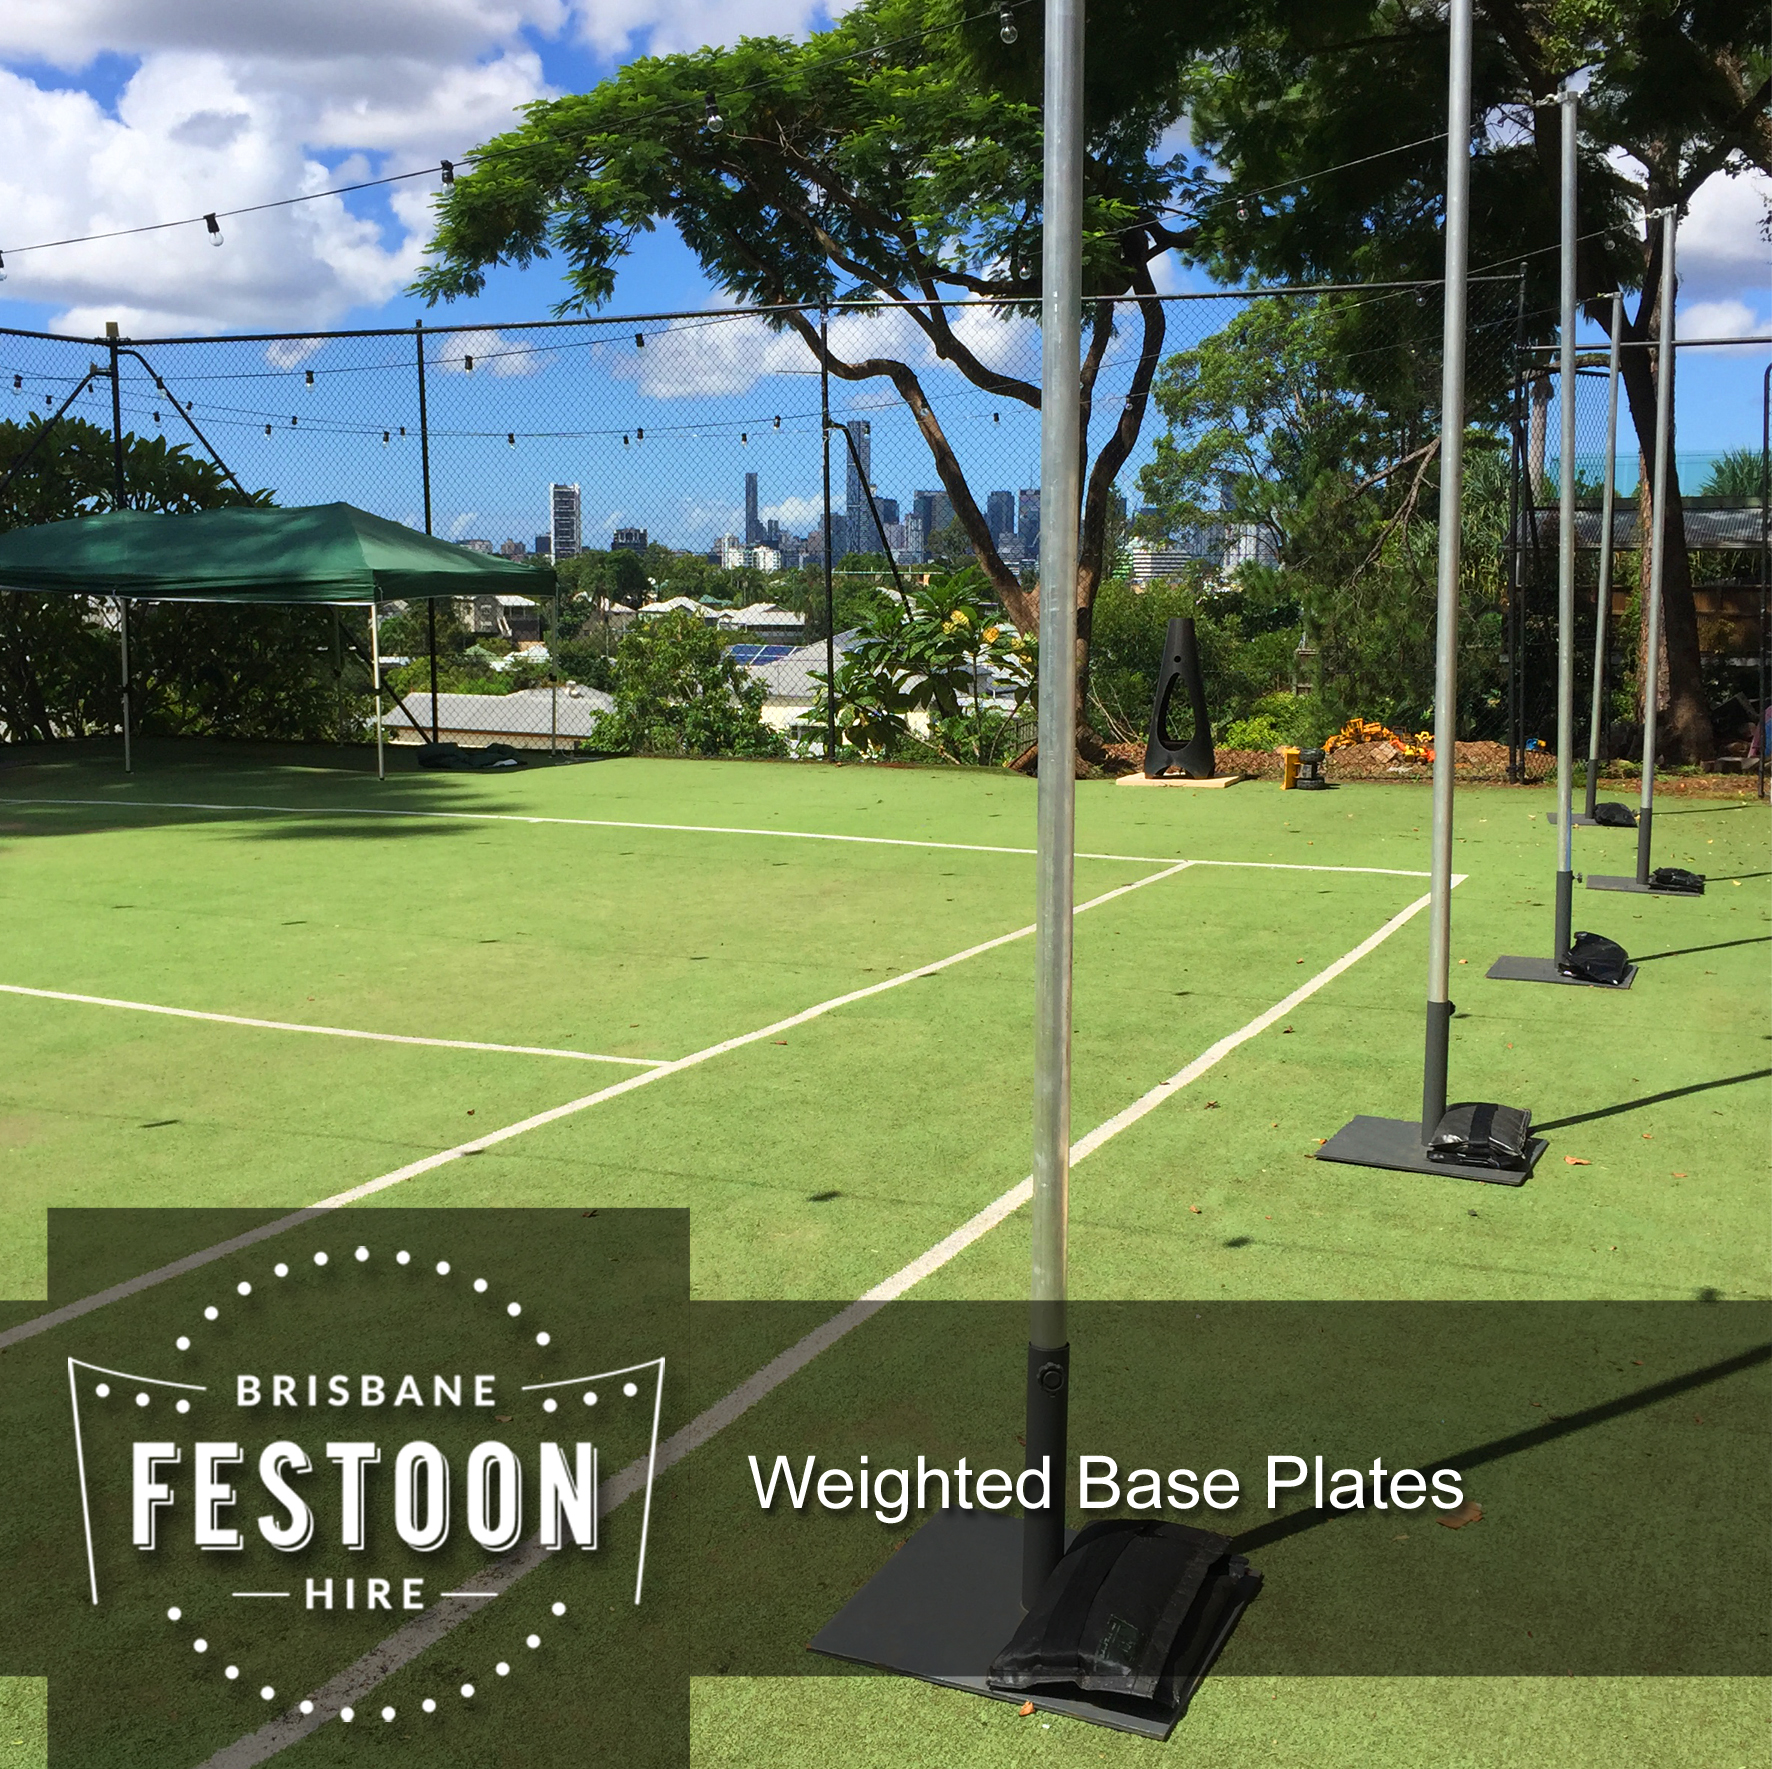 Brisbane Festoon Hire - Base Plate 1.jpg